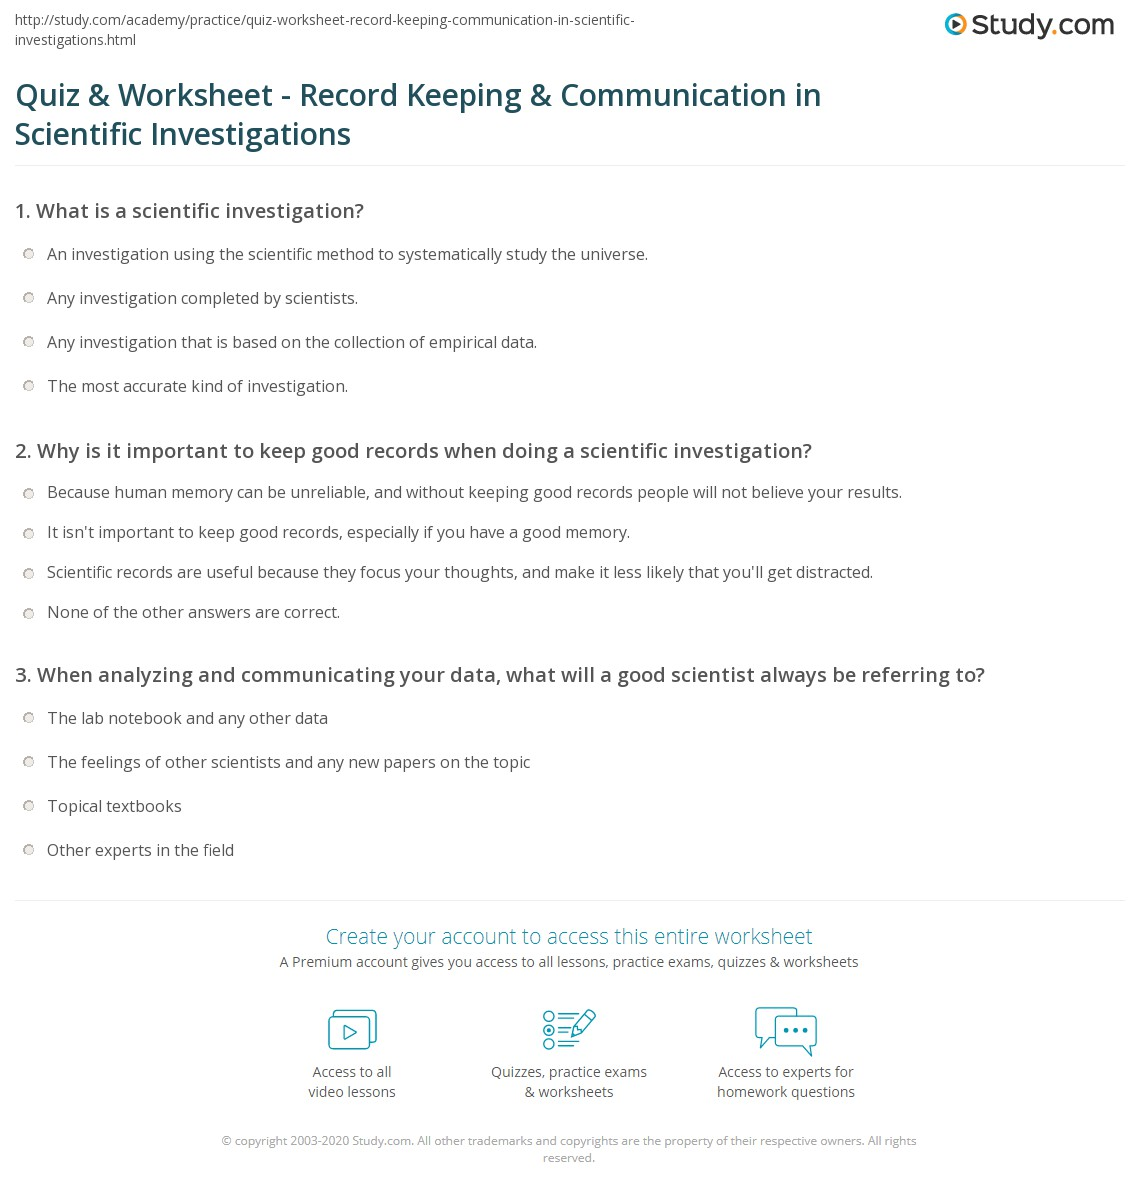 Worksheets A Good Scientist Can Worksheet quiz worksheet record keeping communication in scientific why is important to keep good records when doing a investigation